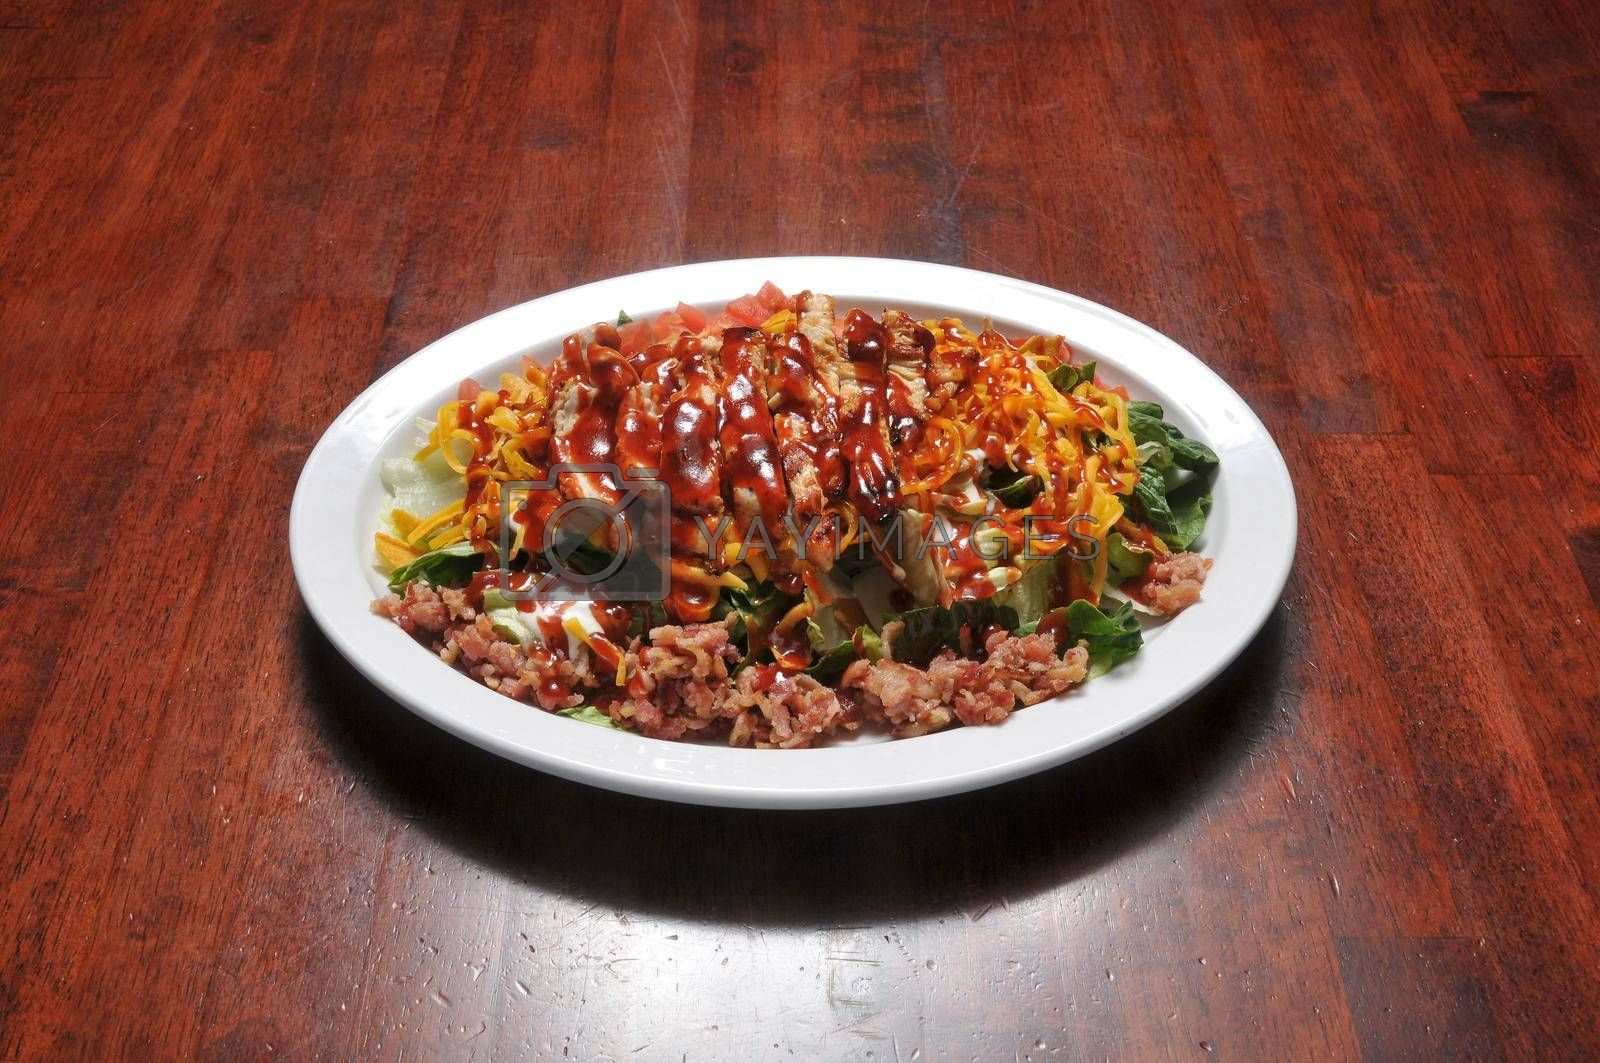 Traditional American cuisine known as bbq chicken salad